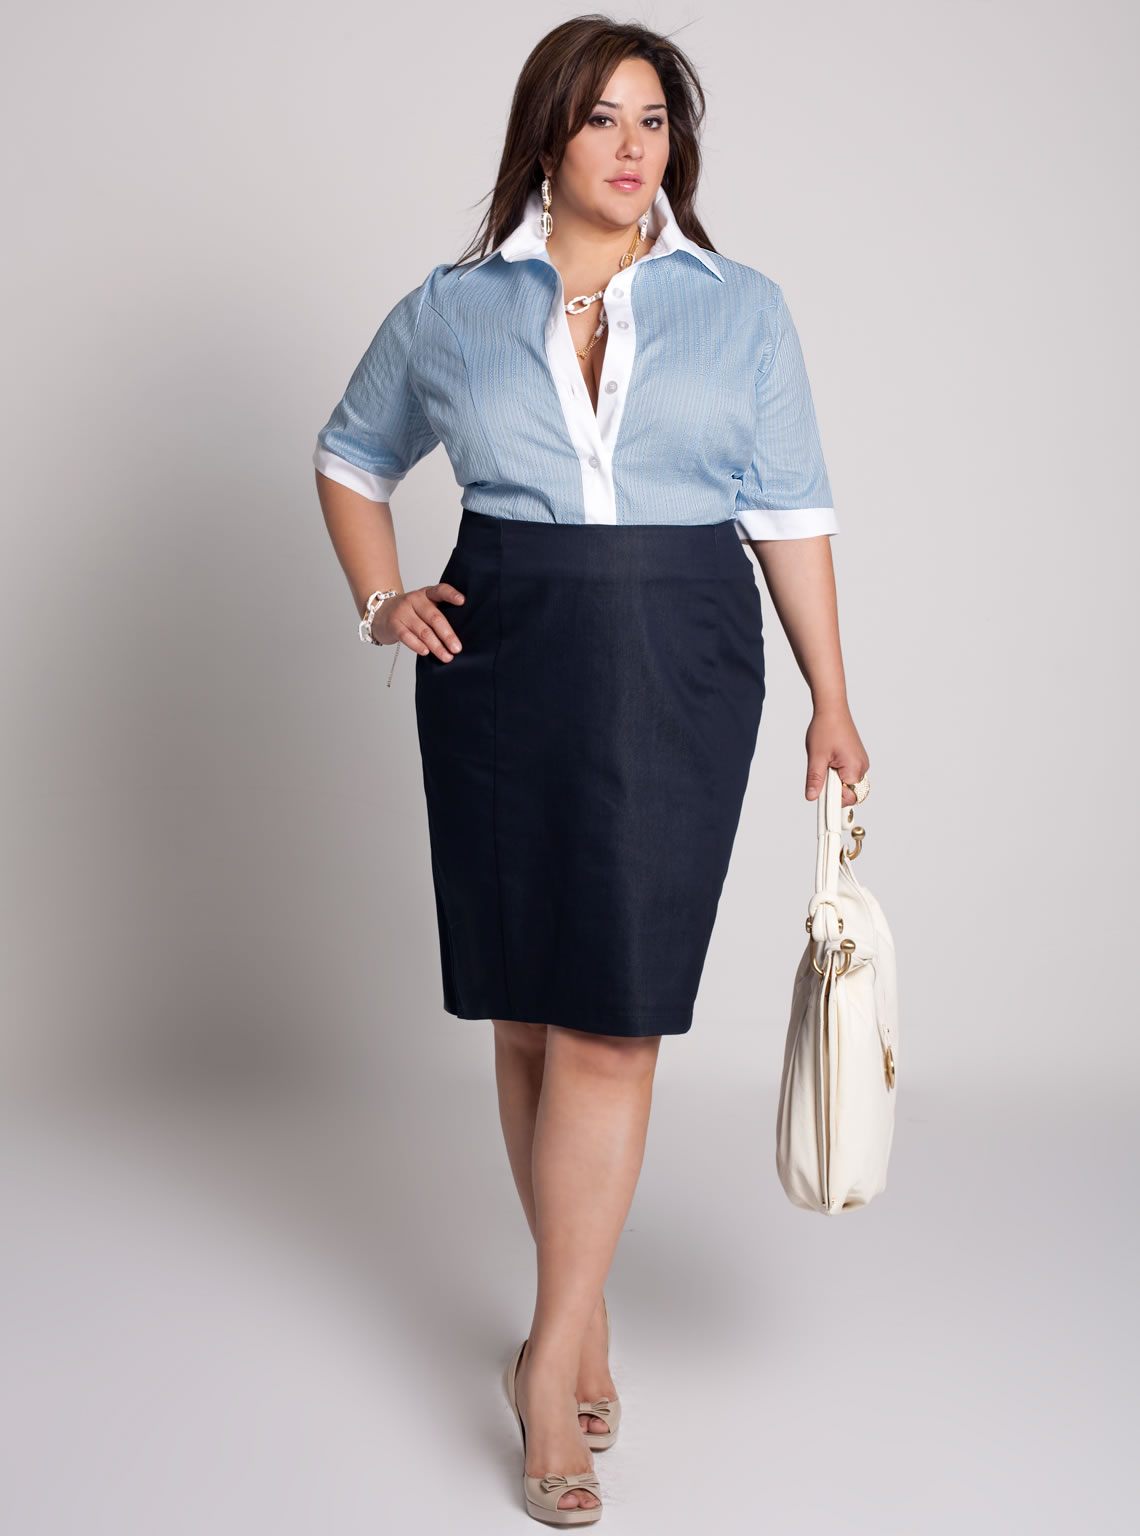 Shop Plus Size Clothing Online From Our Wide Selection of Brands Browse our marketplace of comfortable plus size women's clothing brands catering to sizes 12 to We curate the best and largest selection of styles and colors to fit your curves.